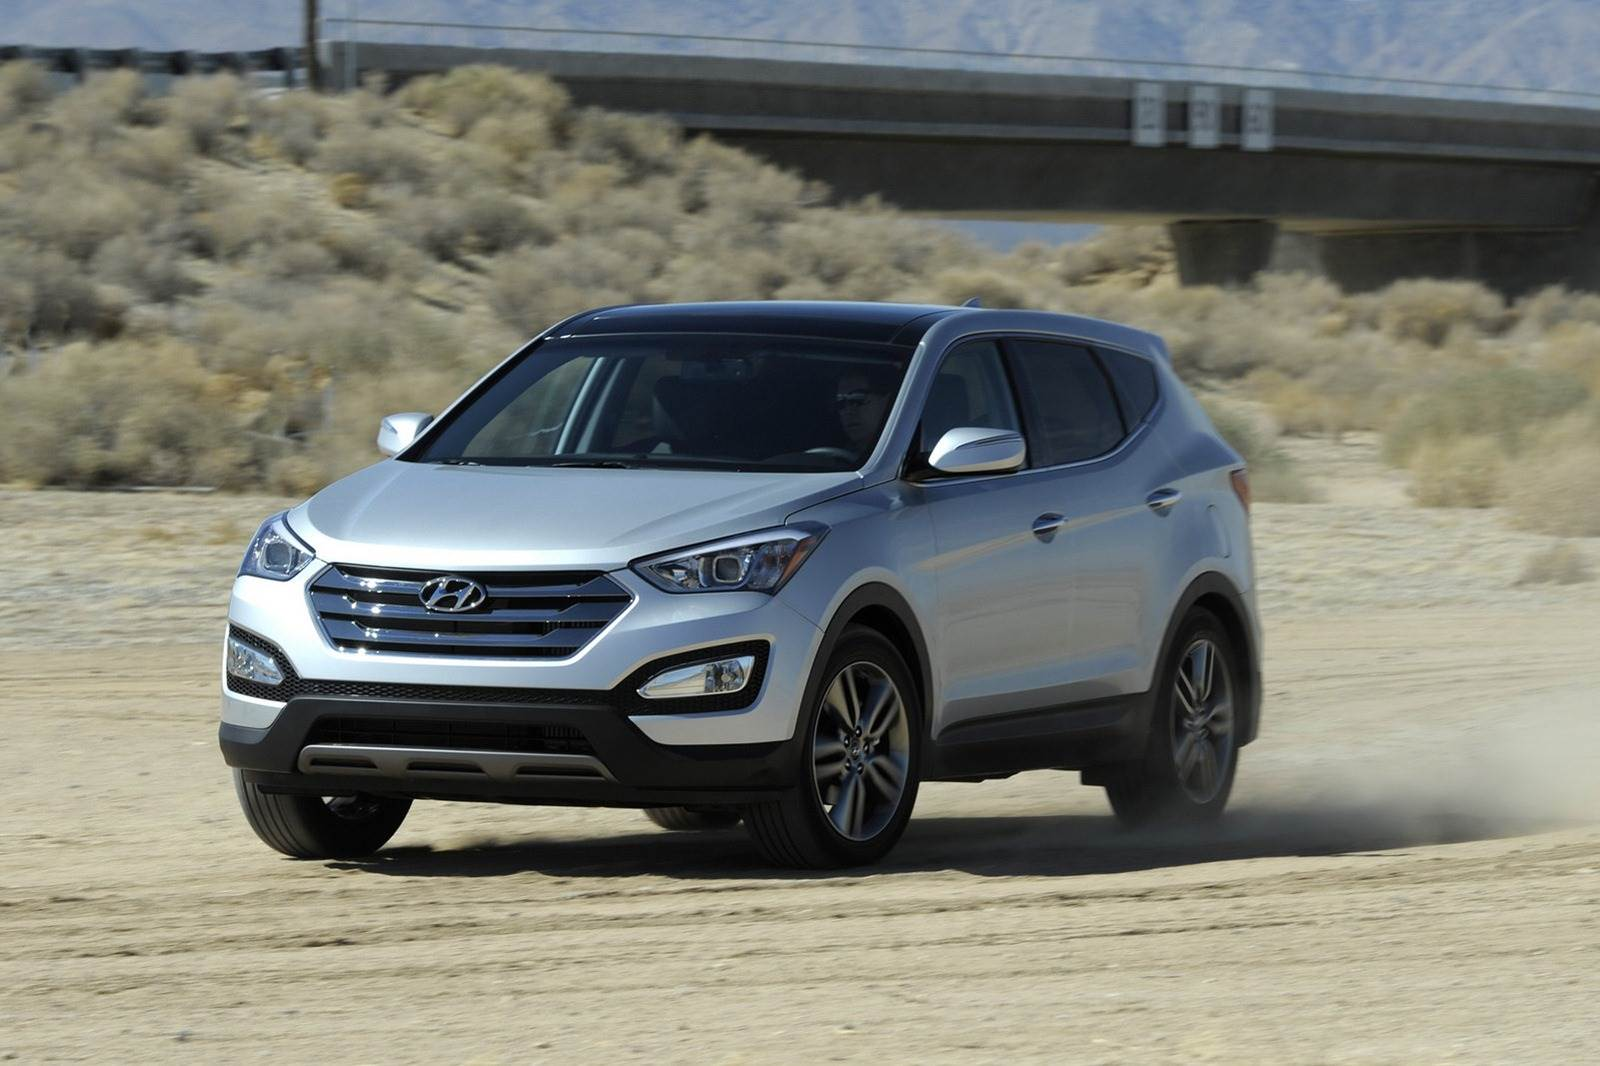 New Hyundai Santa Fe photo gallery